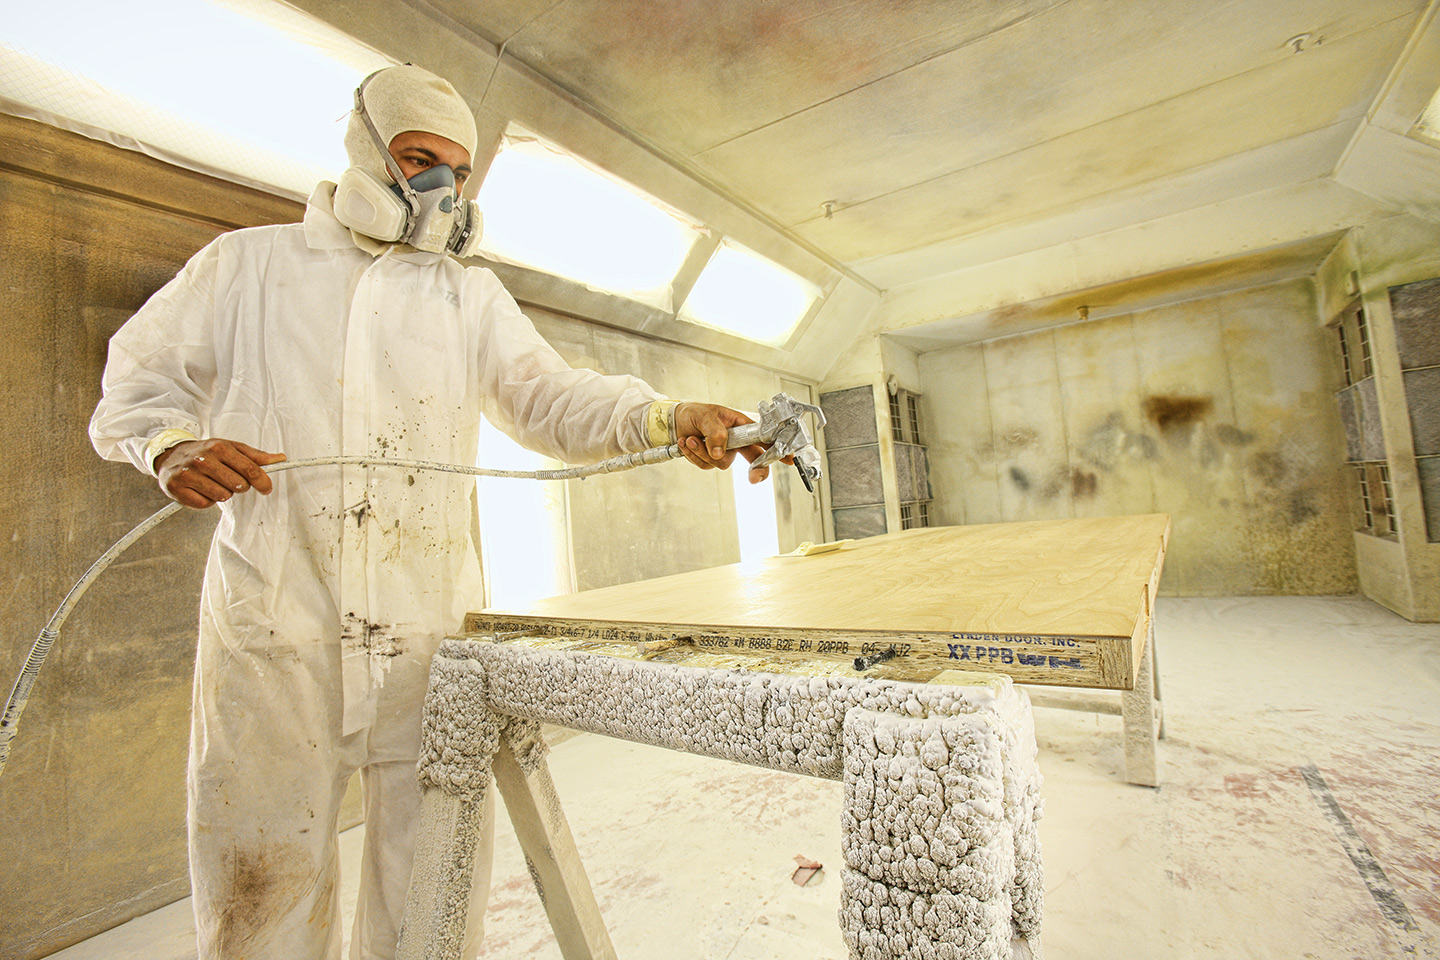 Paint Booth, Urithan, Sprayer, Tyvec suit,